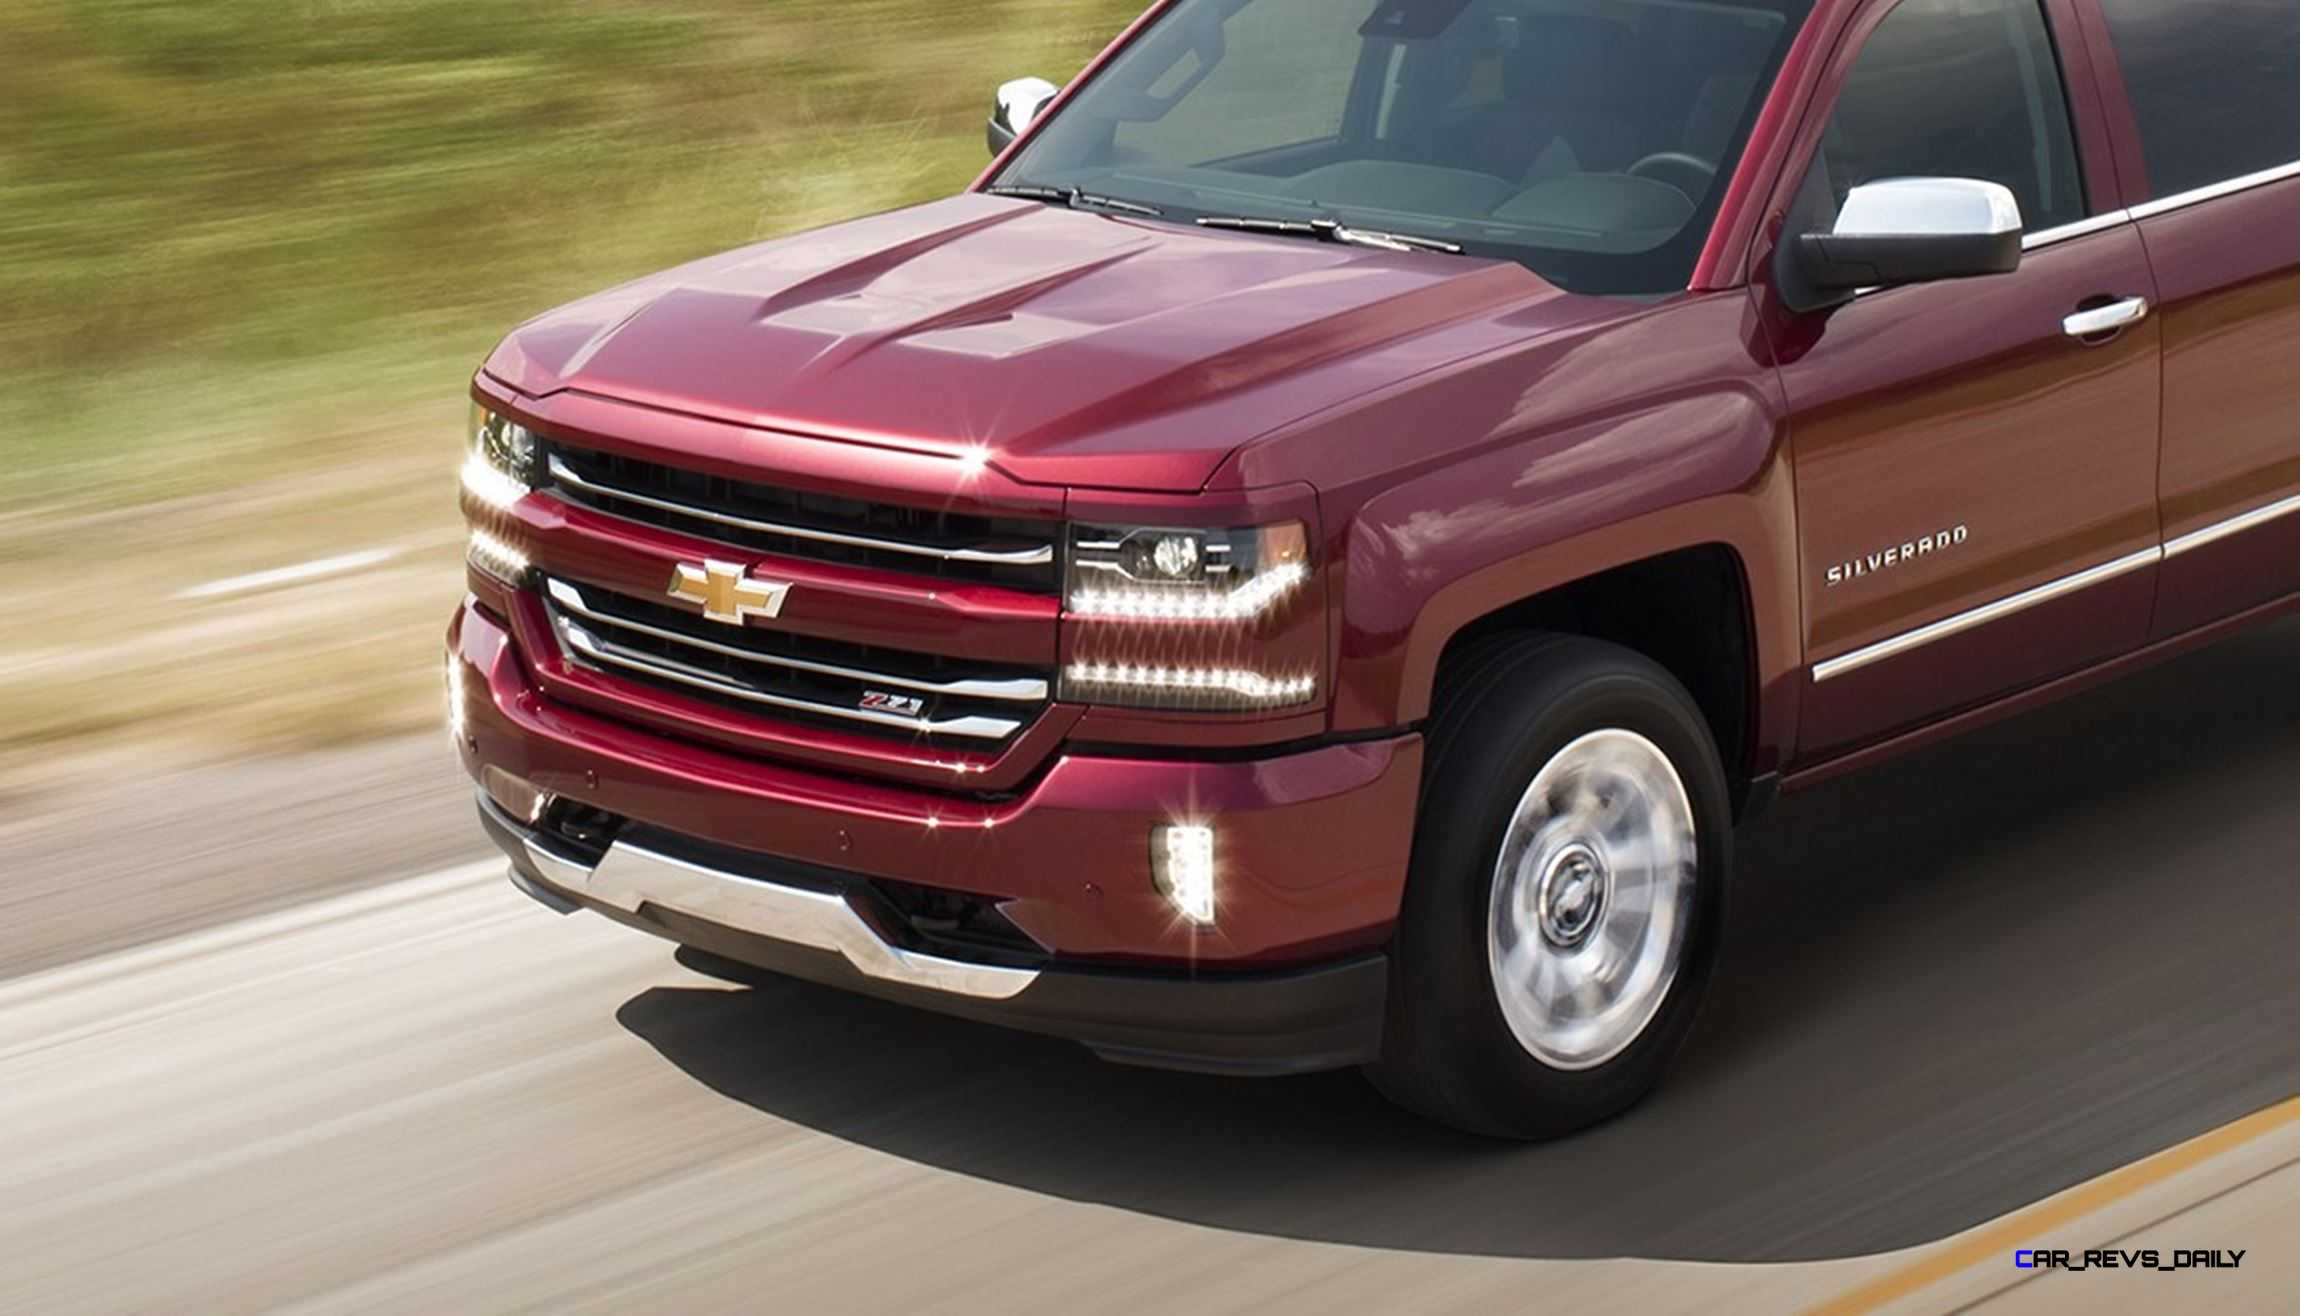 2016 chevrolet silverado brings lux led upgrades 8 speed auto for 5 3l v8. Black Bedroom Furniture Sets. Home Design Ideas